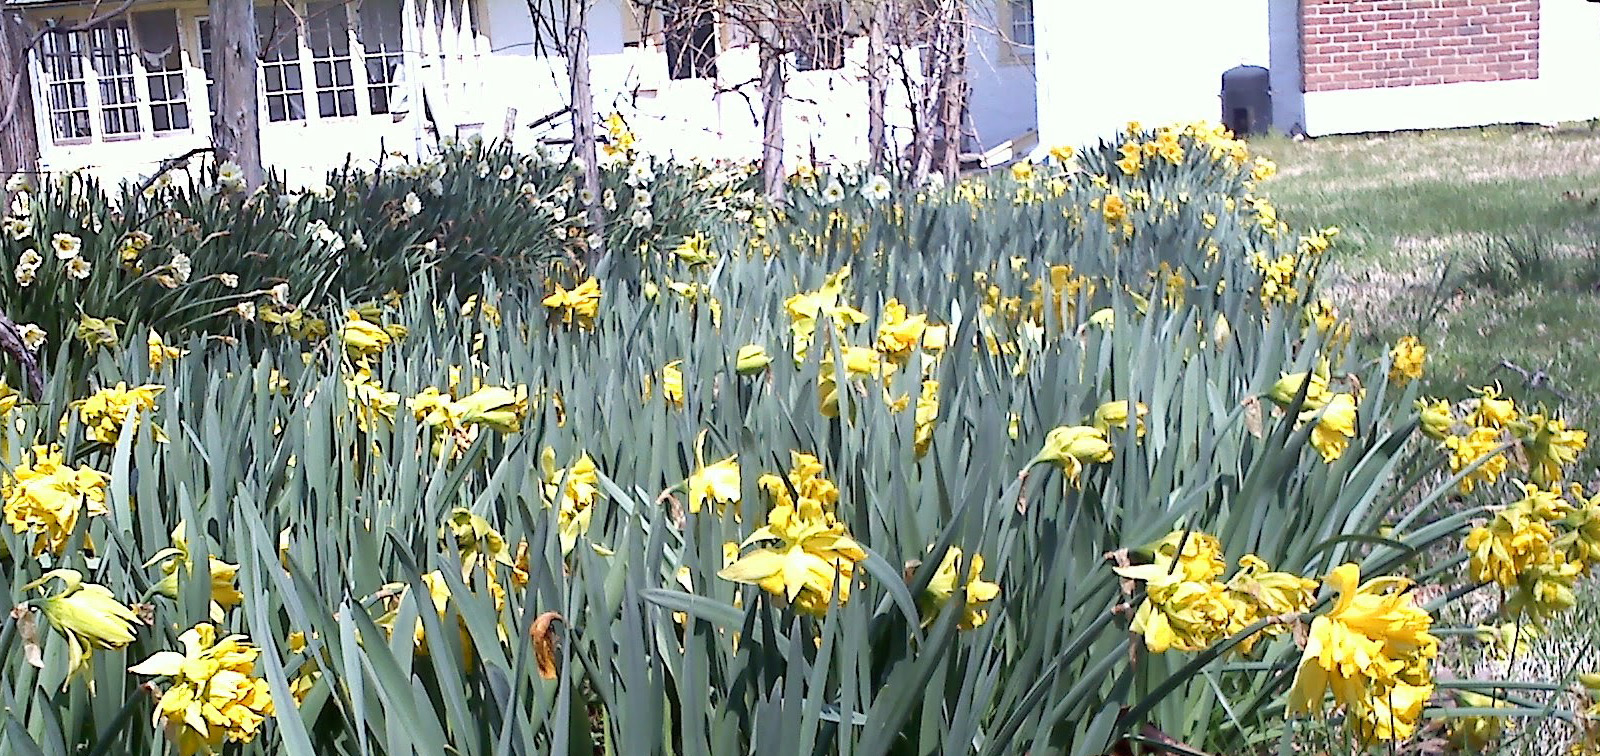 photo of Penrose-Strawbridge with daffodils in bloom